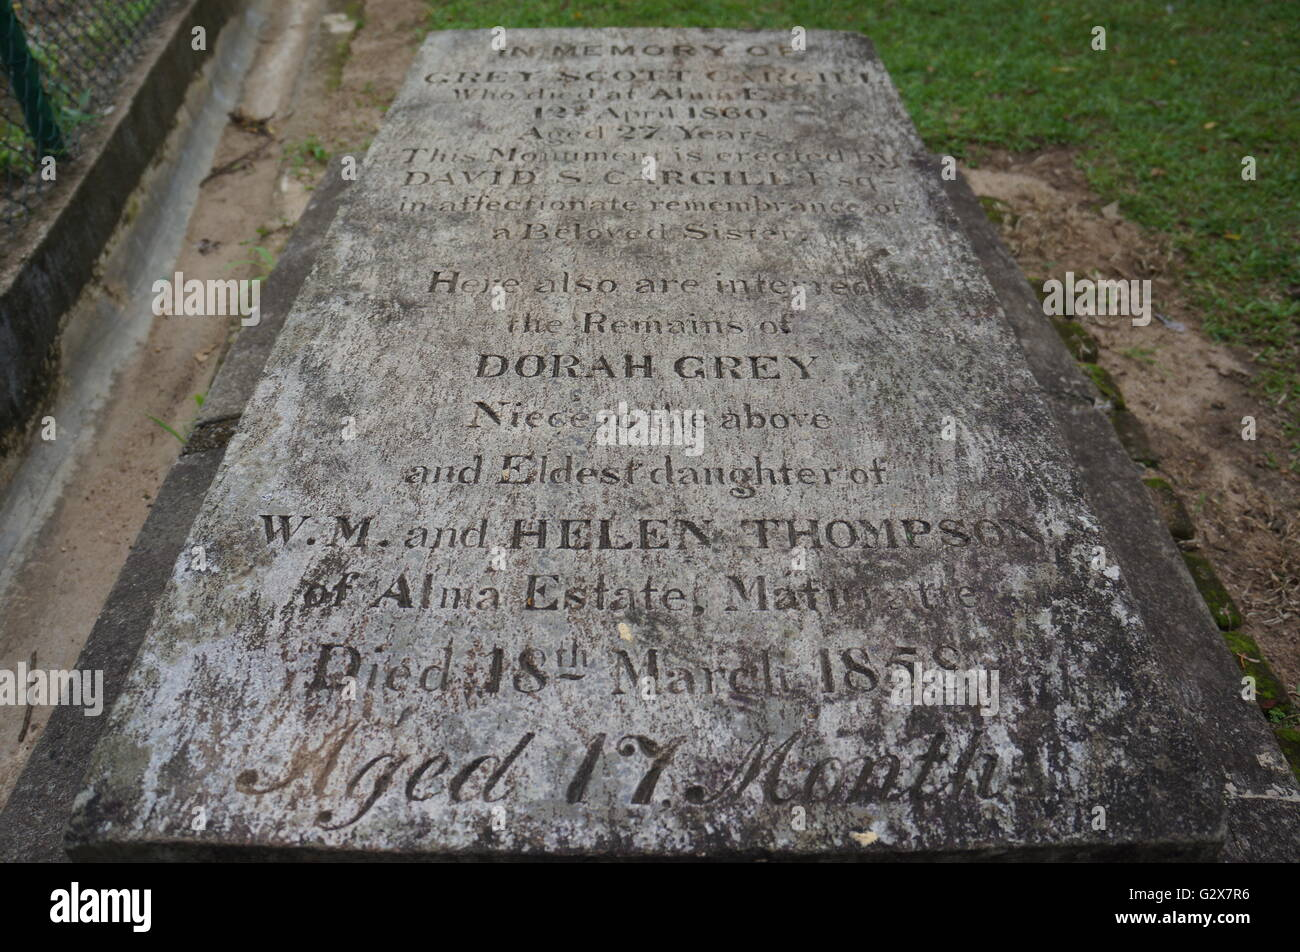 Headstone at Kandy Garrison Cemetery, Kandy, Sri Lanka of  Dorah Grey, an English baby girl who died at 17 months. - Stock Image